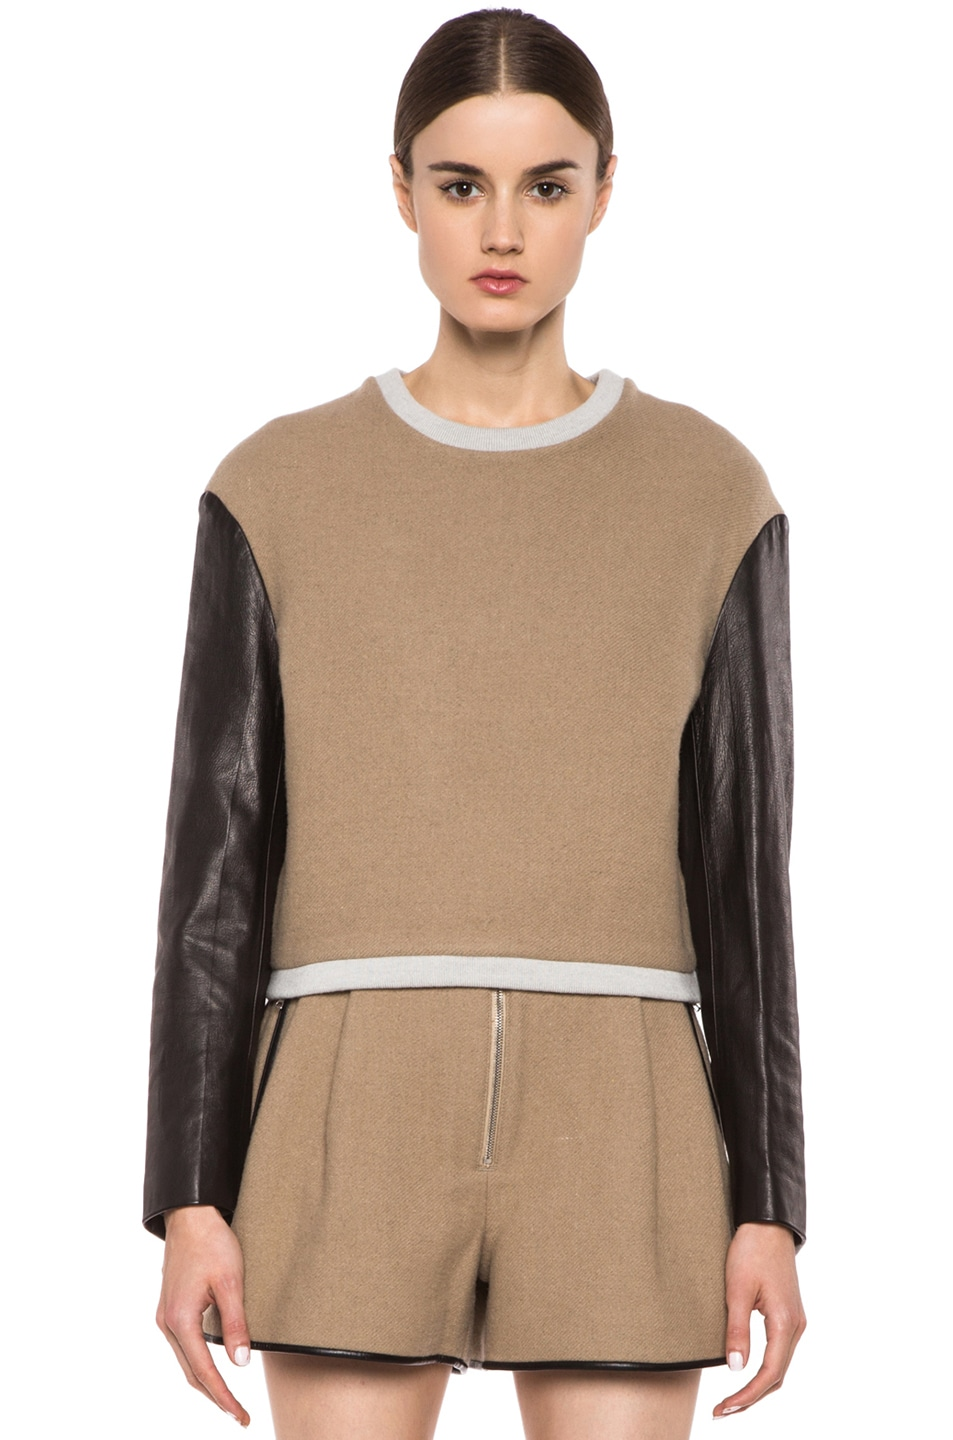 Image 1 of 3.1 phillip lim Leather Sleeve Cropped Wool-Blend Sweatshirt in Beige